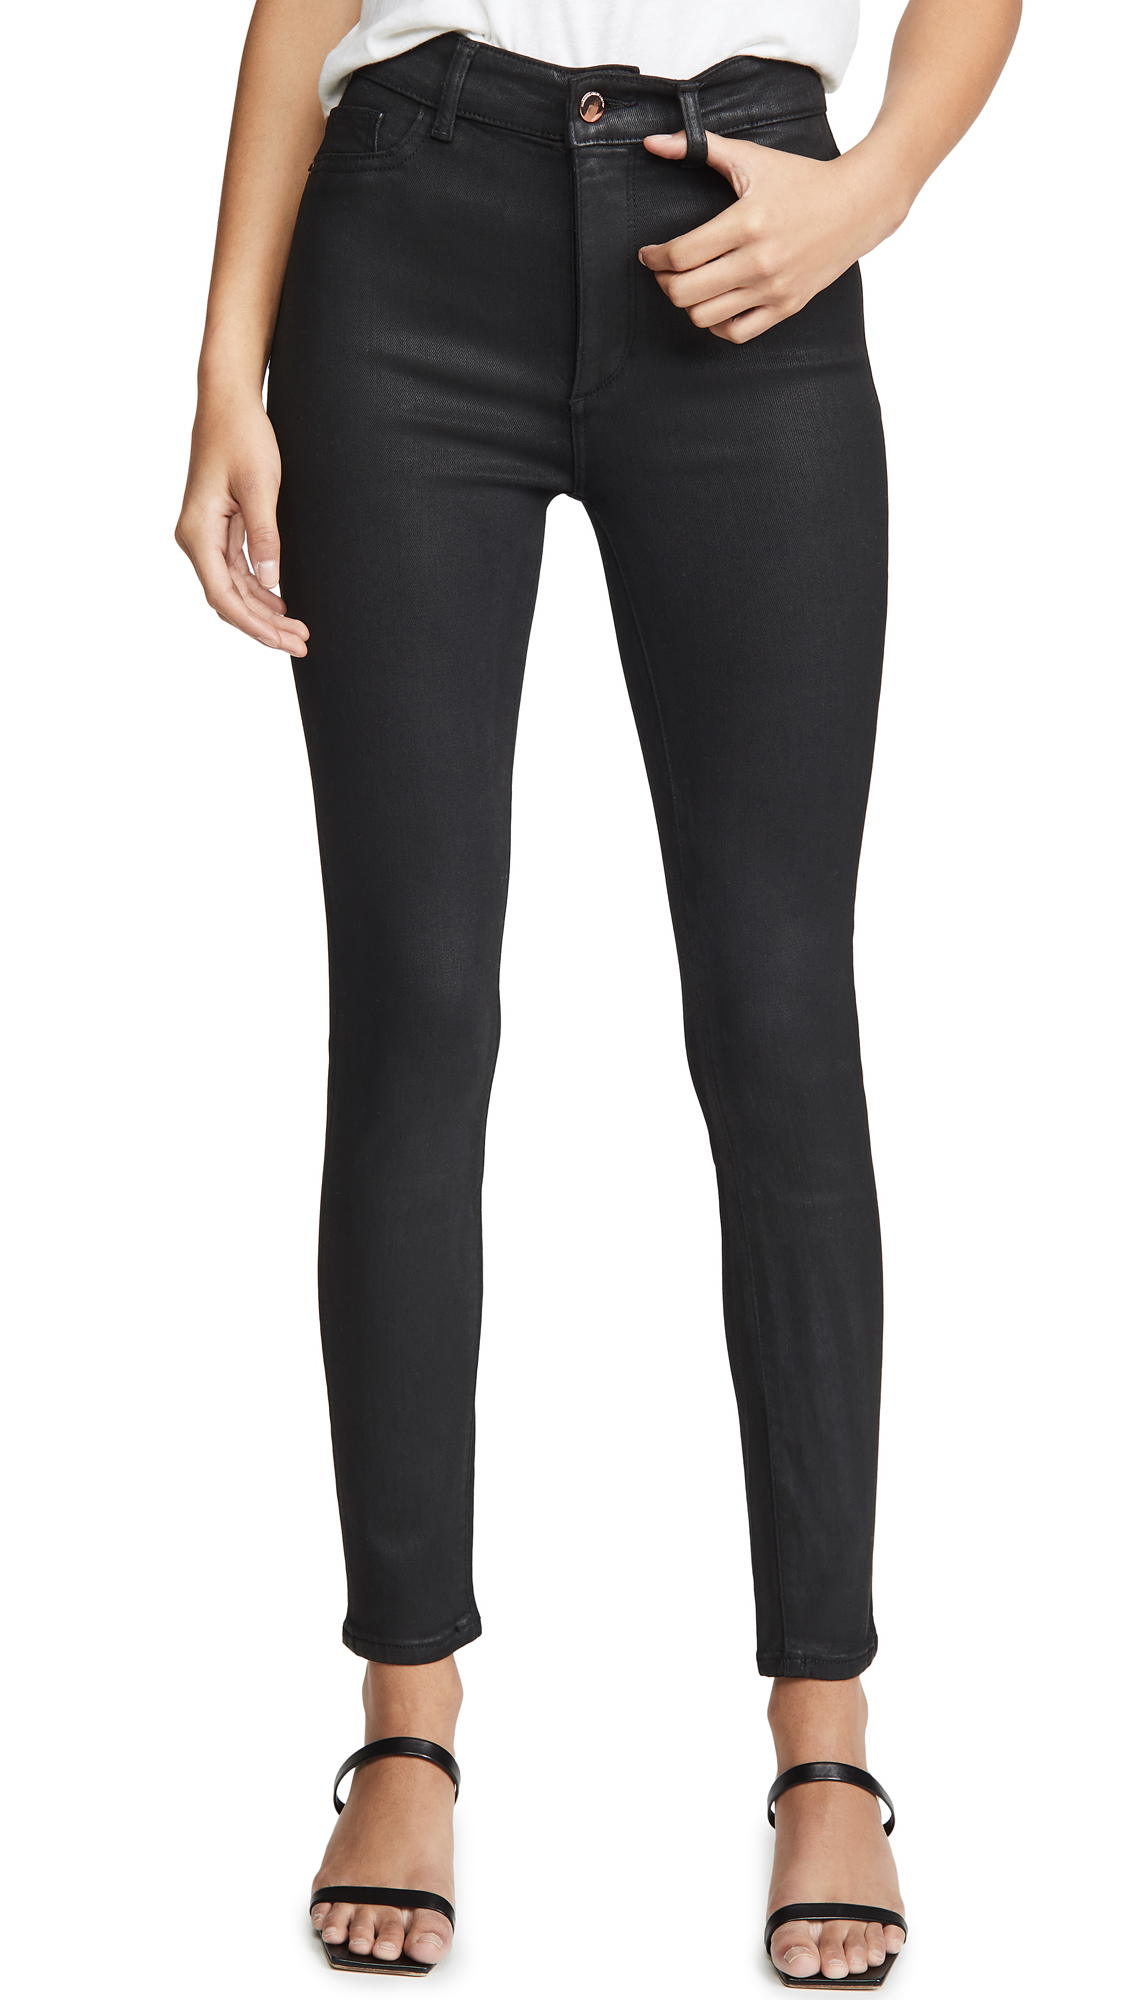 Buy DL online - photo of DL1961 x Marianna Hewitt Farrow Ankle High Rise Skinny Jeans